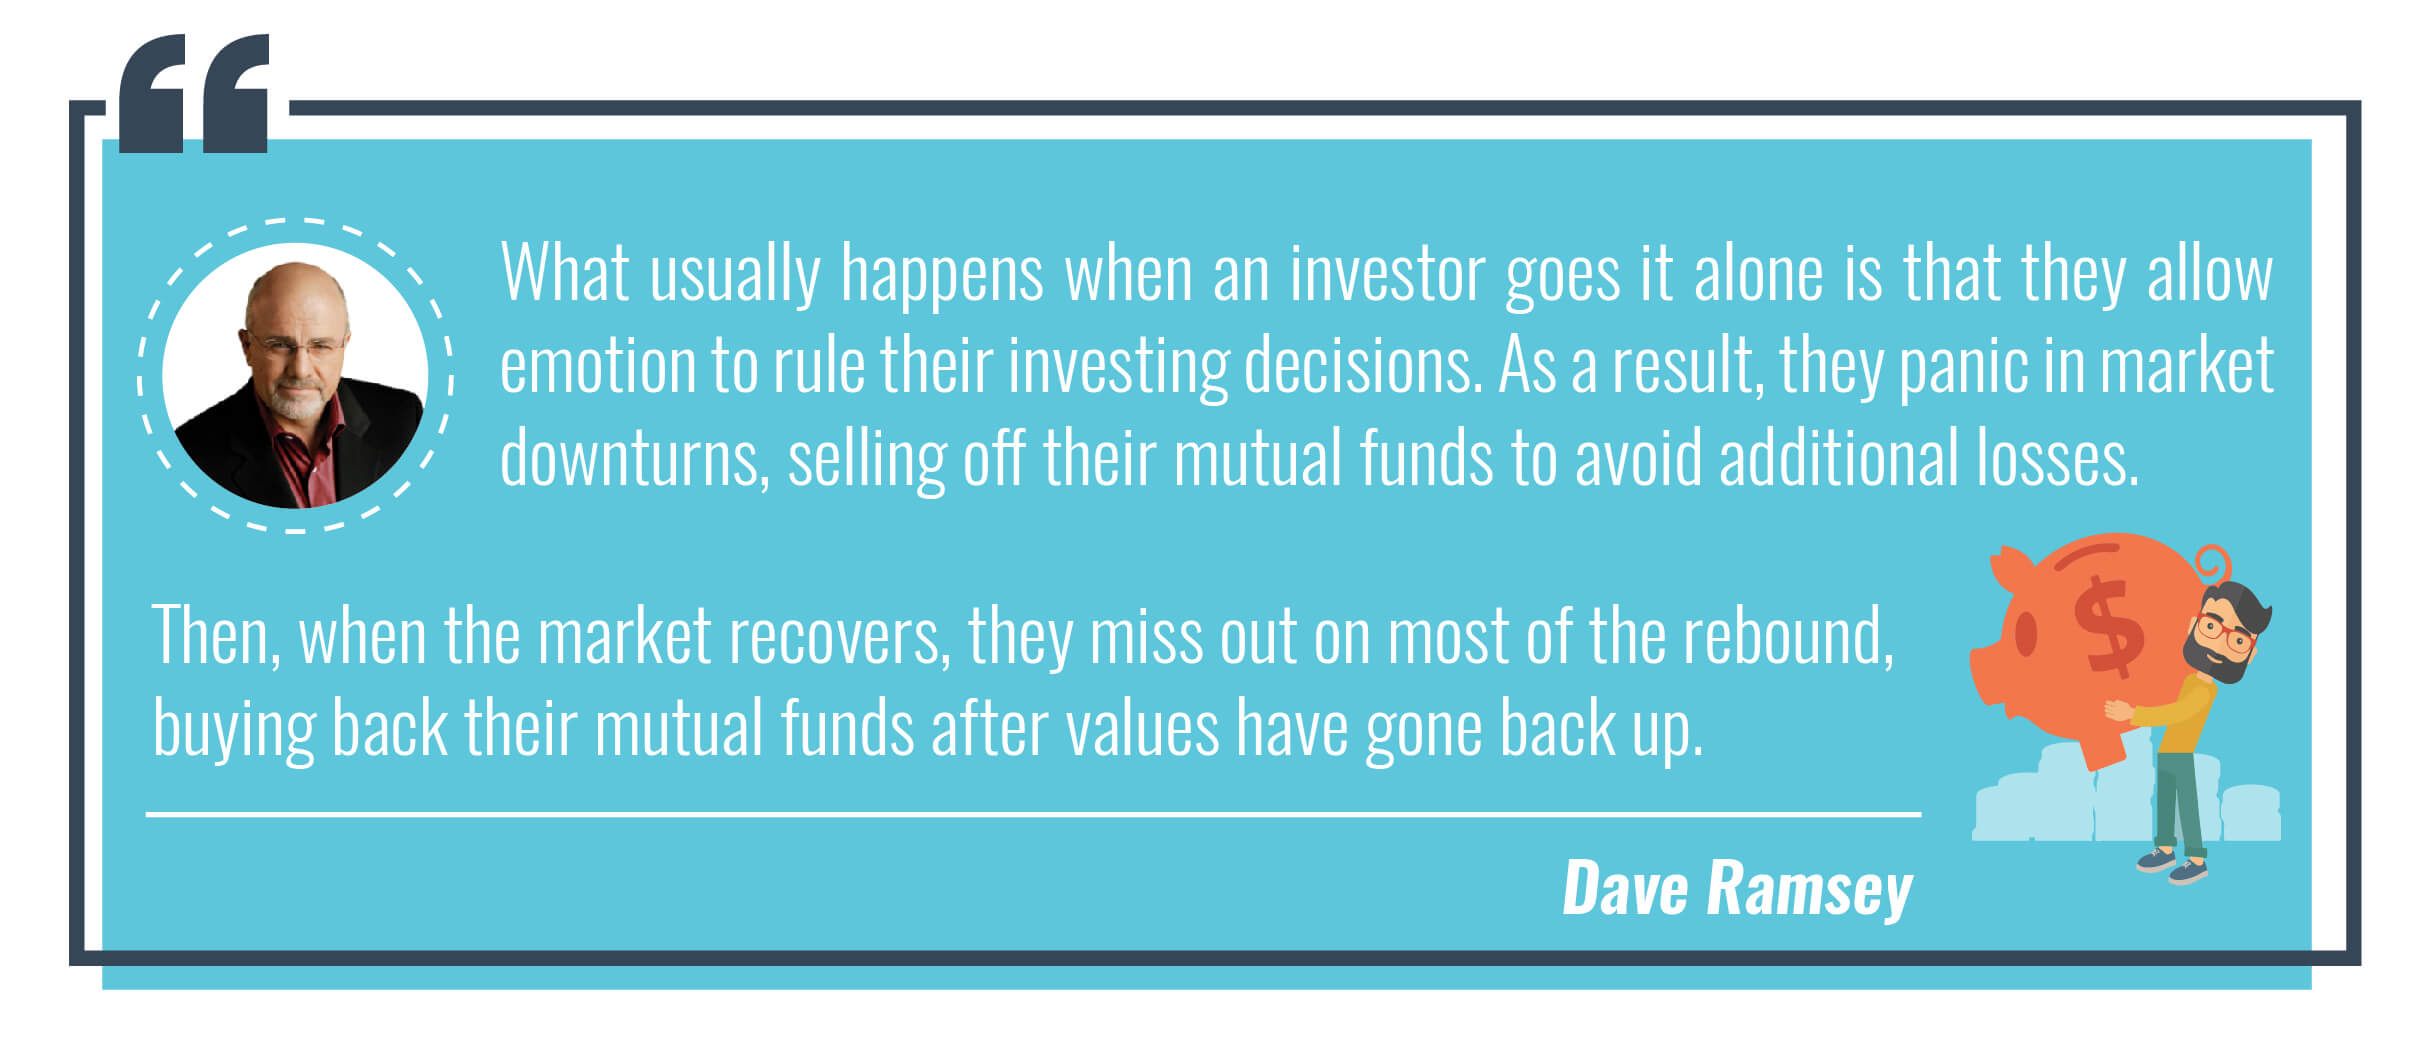 Dave Ramsey quote about investors